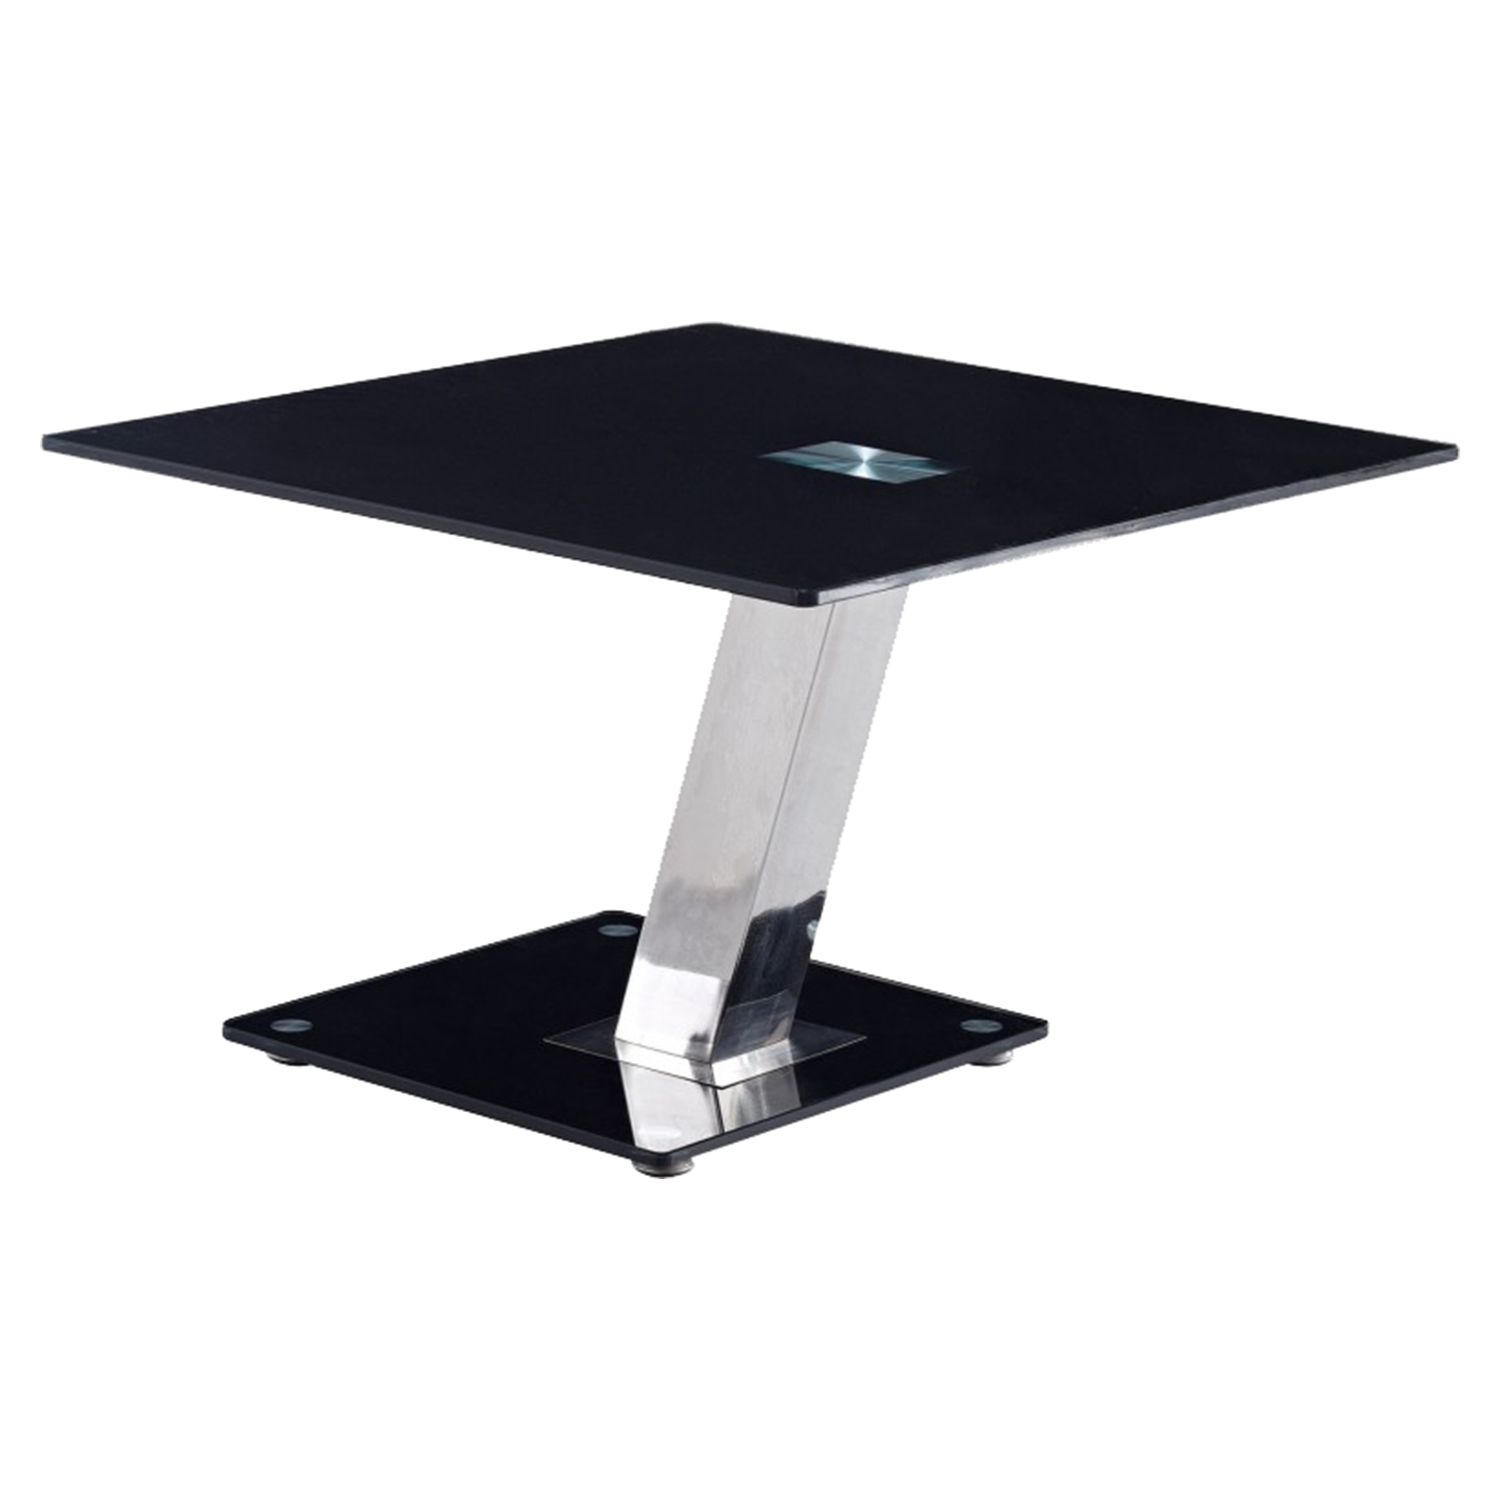 Briana End Table - Black